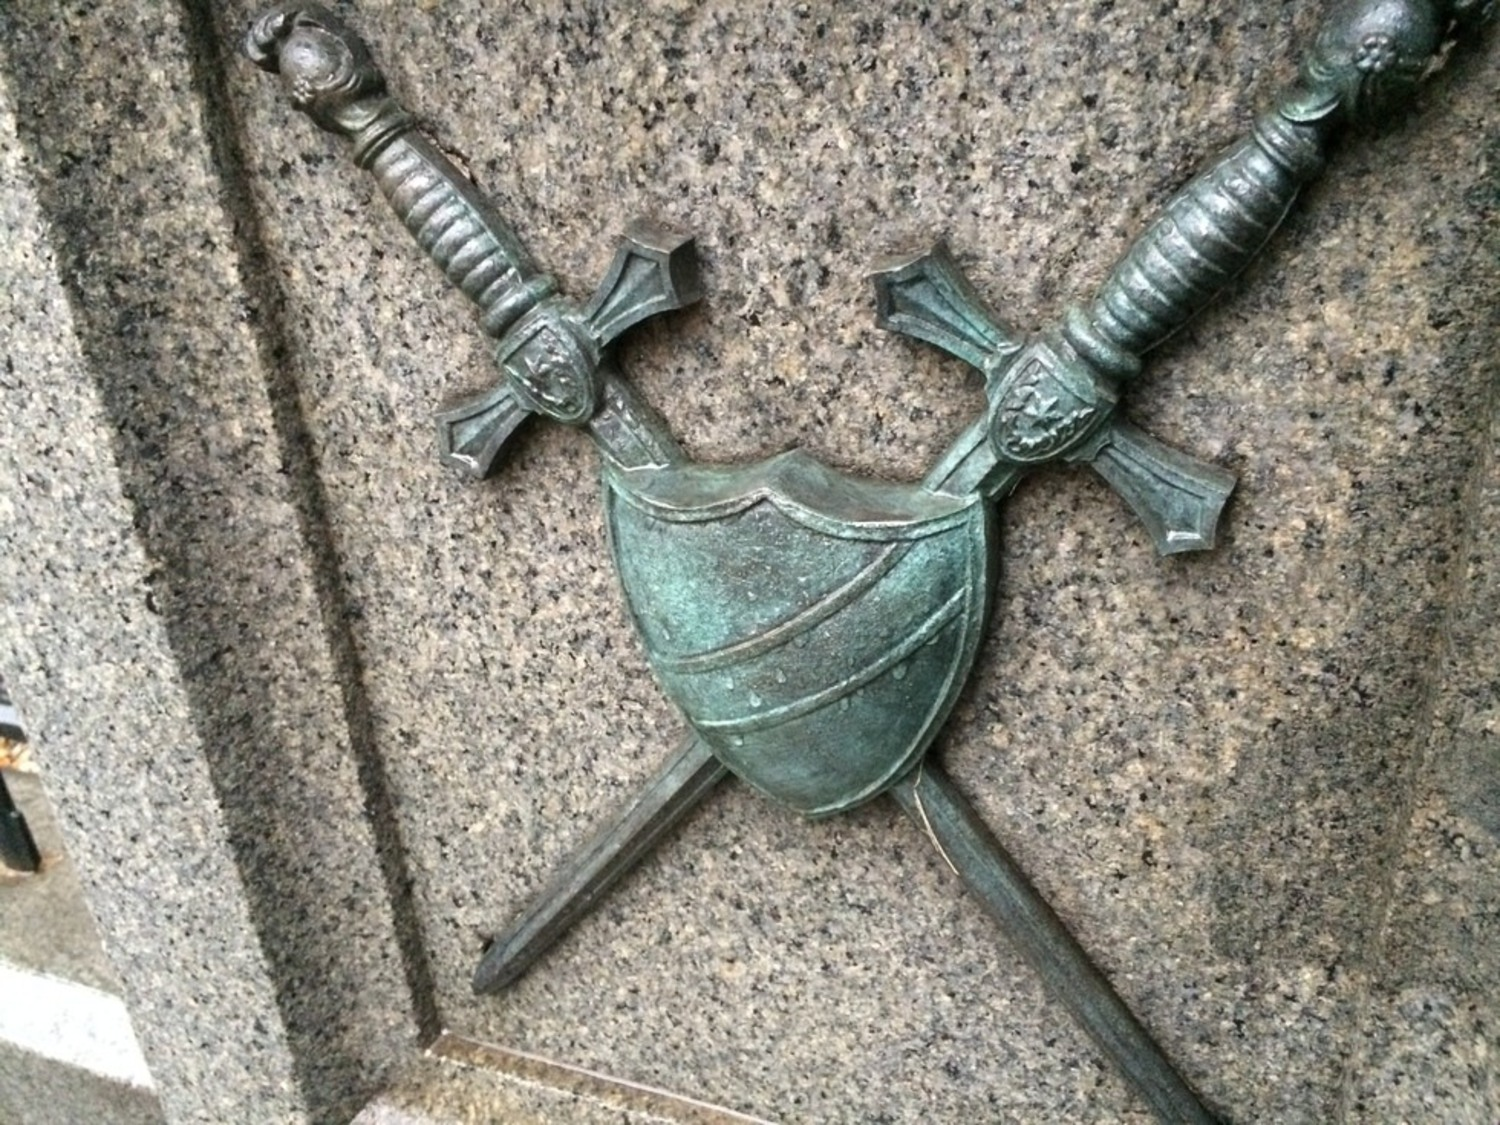 One of the bronze relief images, crossed swords and shield